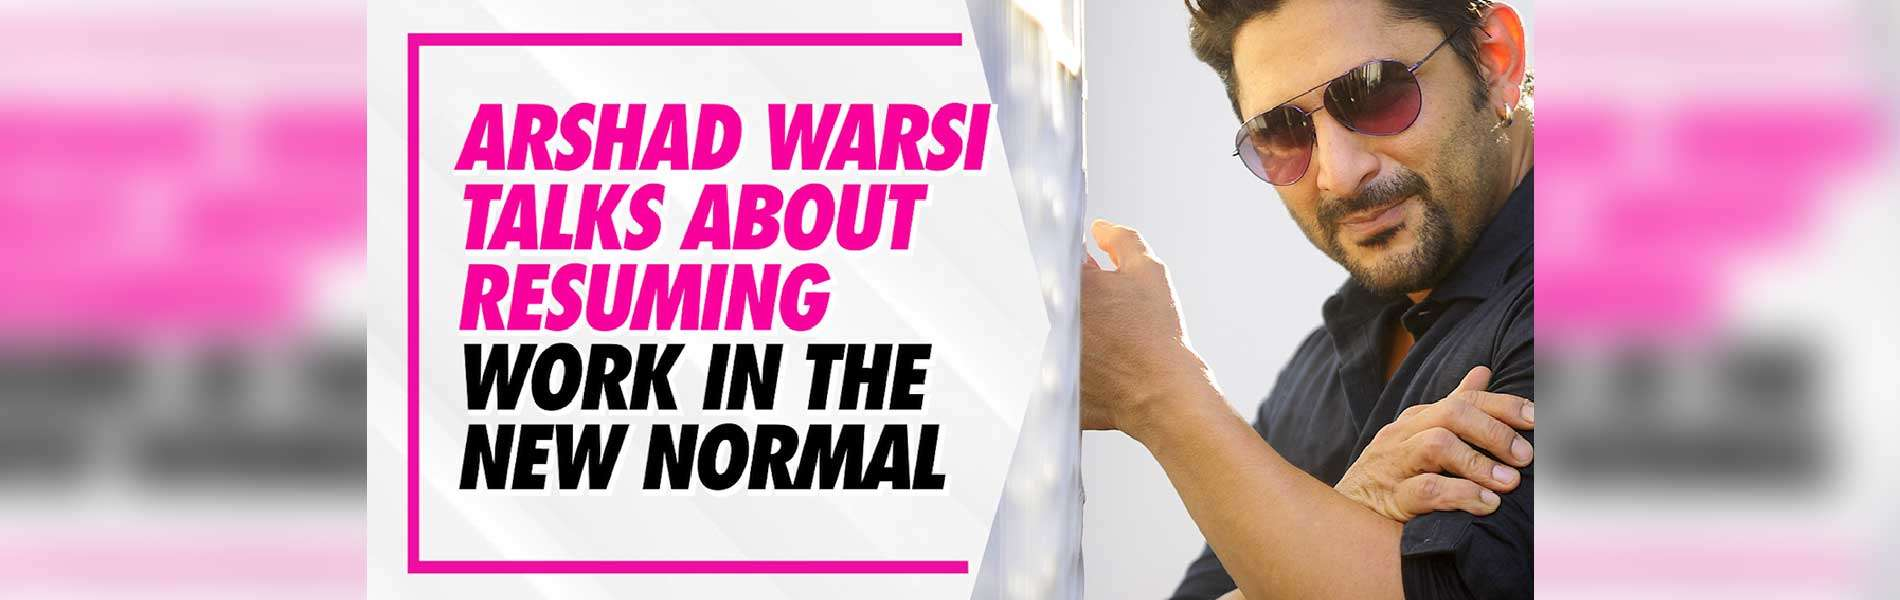 arshad-warsi-talks-about-resuming-work-in-the-new-normal